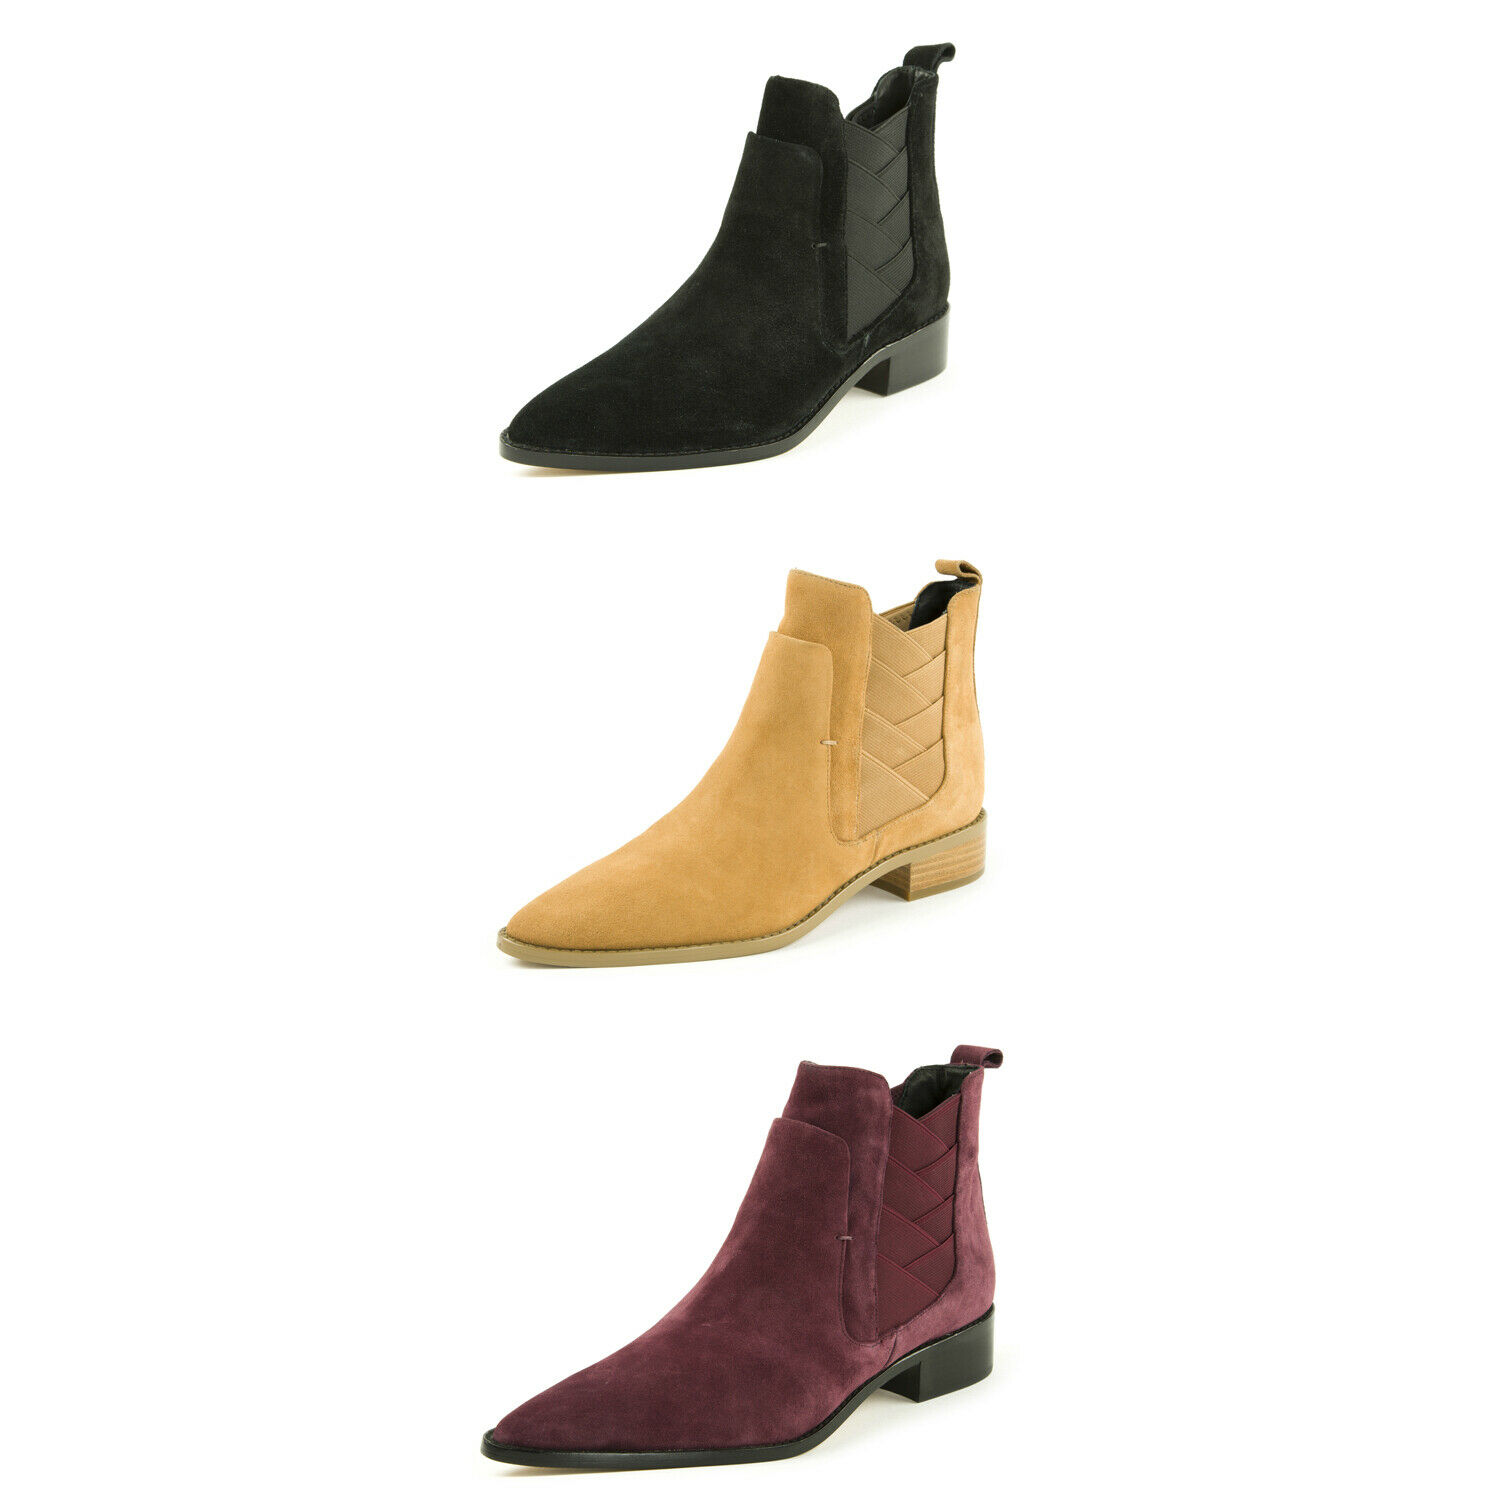 REBECCA MINKOFF Women's Jacy Suede Pointed Toe Ankle Boots  195 NIB